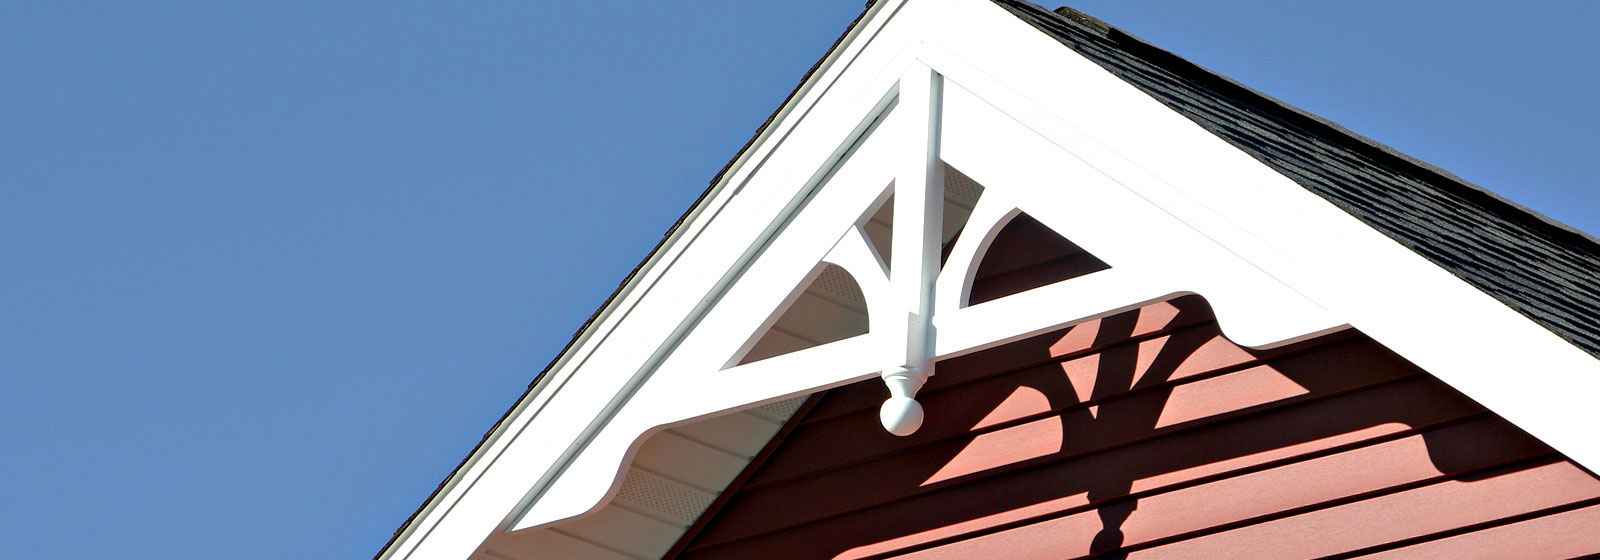 Gable pediments gable decorations shop diy for Gable decorations home depot